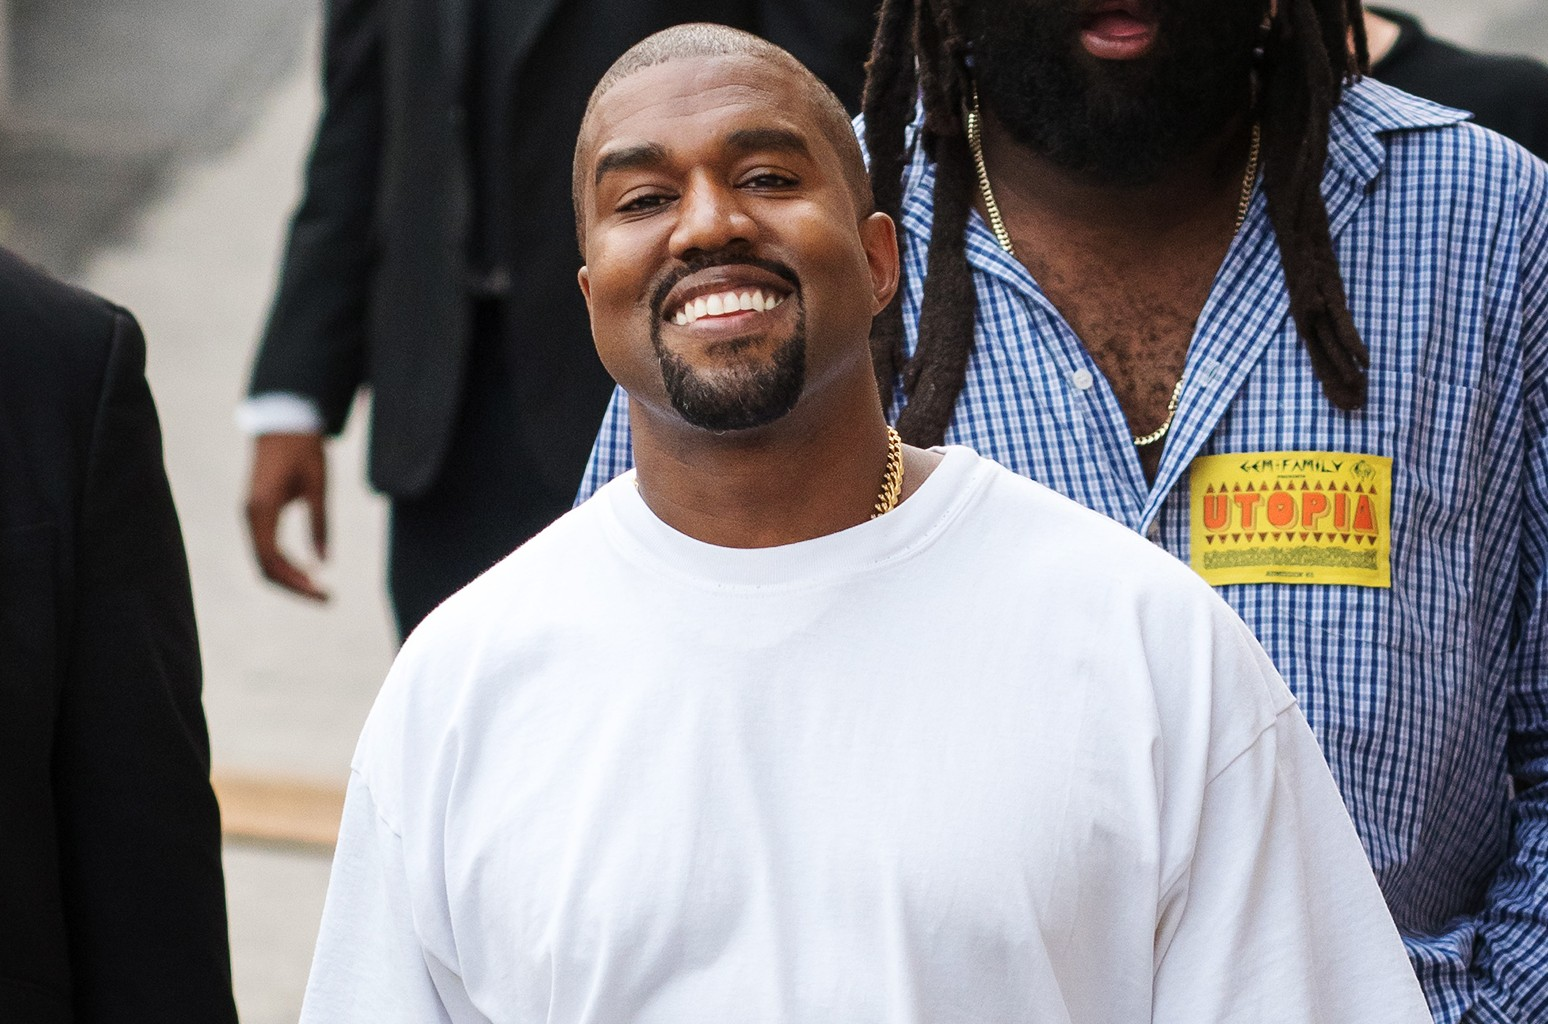 kanye-west-saint-throw-first-pitch-cubs-white-sox-game